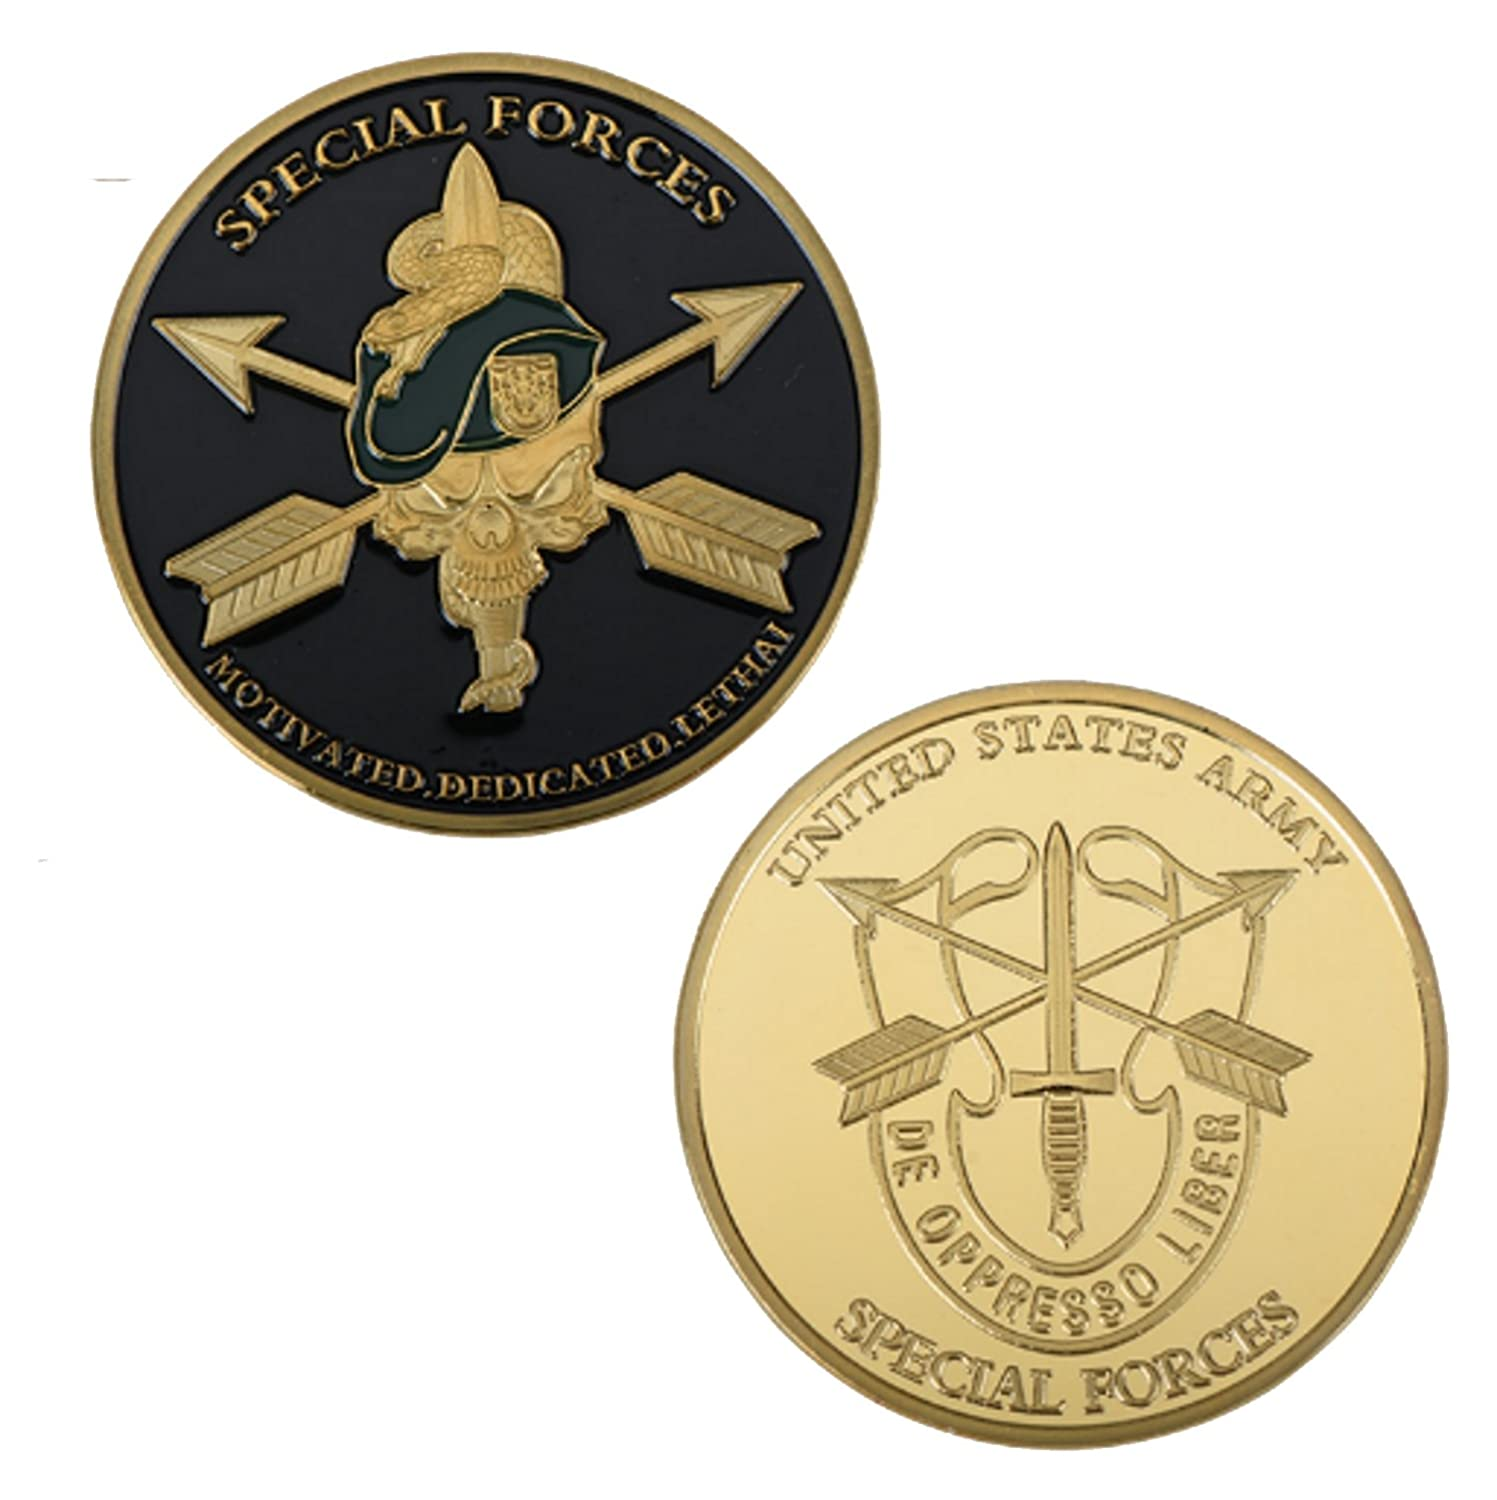 Green Beret Tactical United States Army | Green Beret | Special Forces Challenge Coin #1